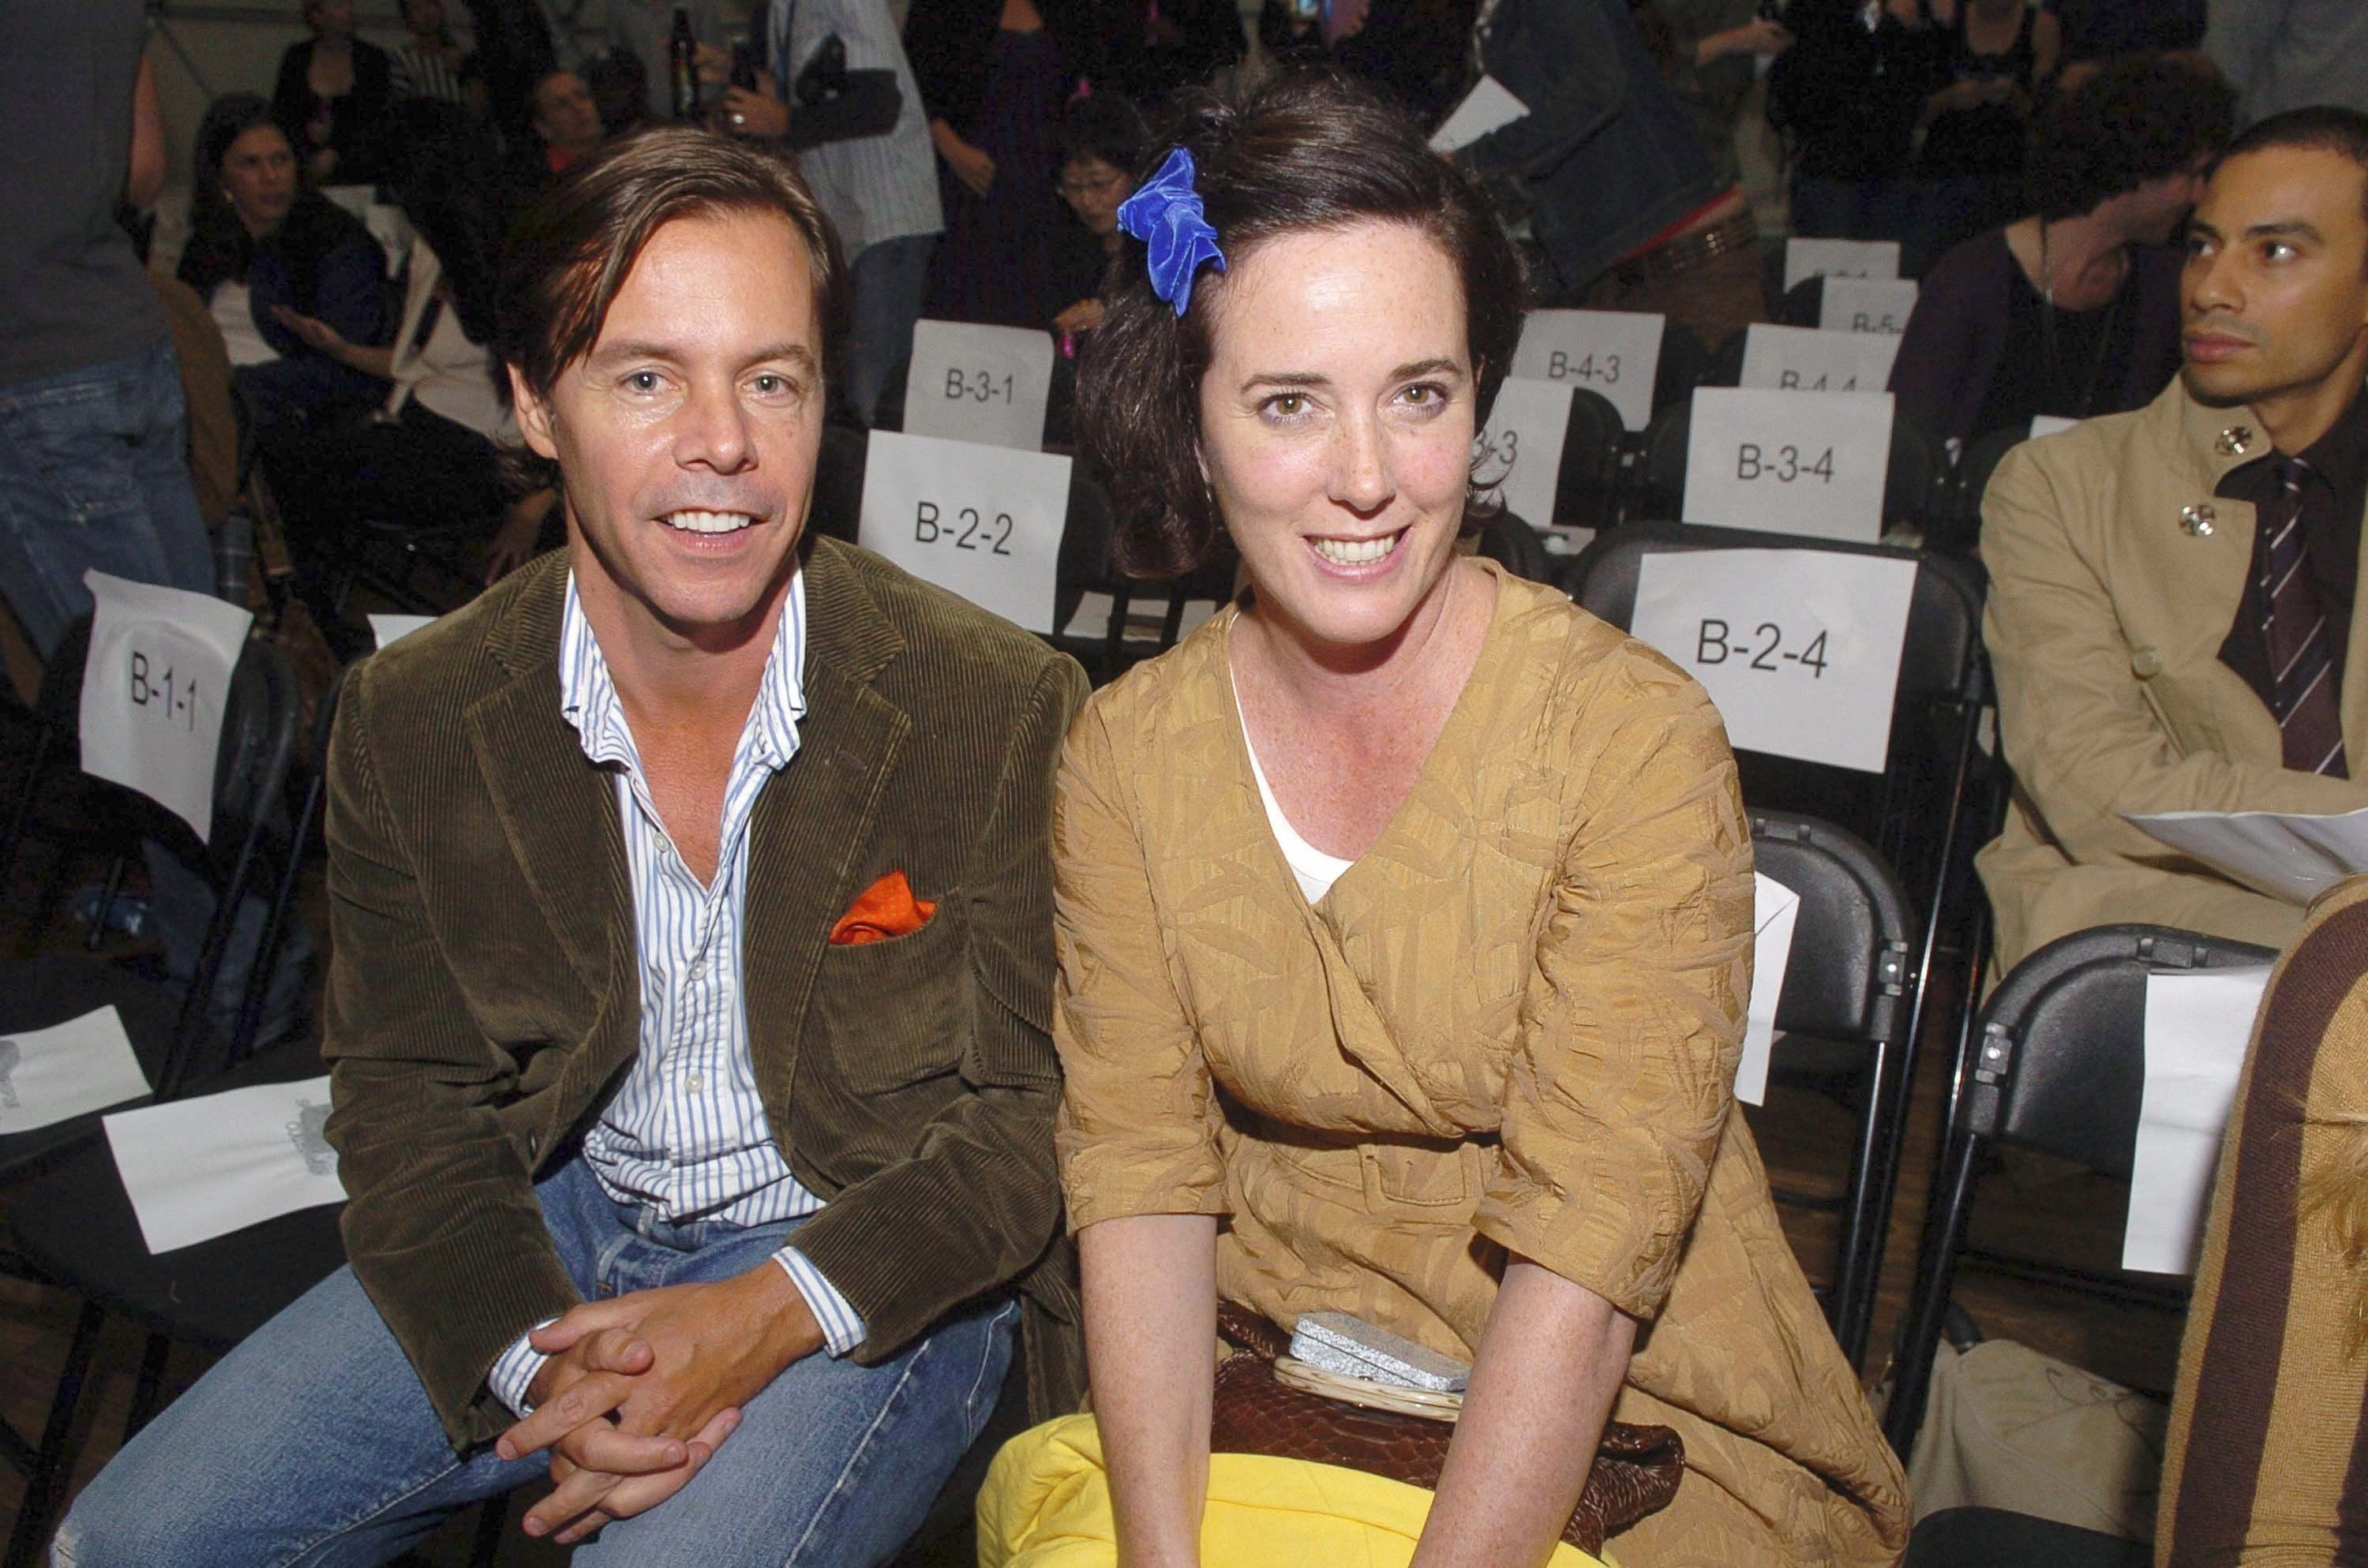 Fashion designer Kate Spade found dead, police say